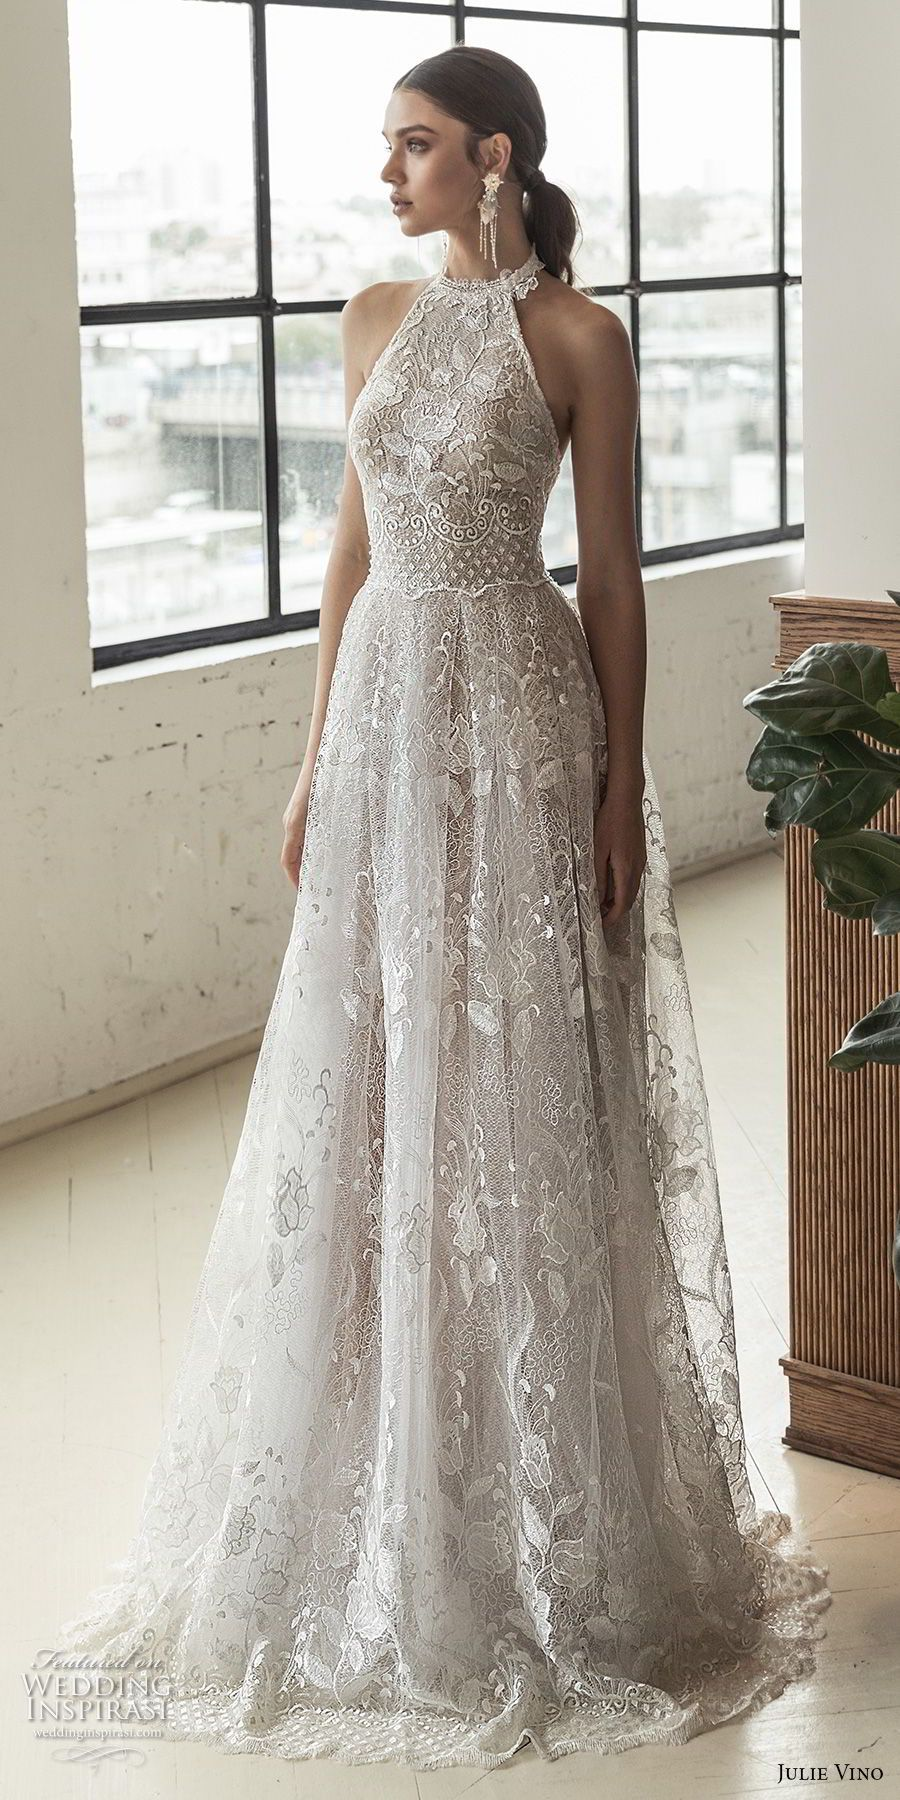 3c9746c932fc julie vino 2019 romanzo bridal sleeveless halter jewel neck full  embellishment romantic a line wedding dress open back sweep train (4) mv --  Romanzo by ...